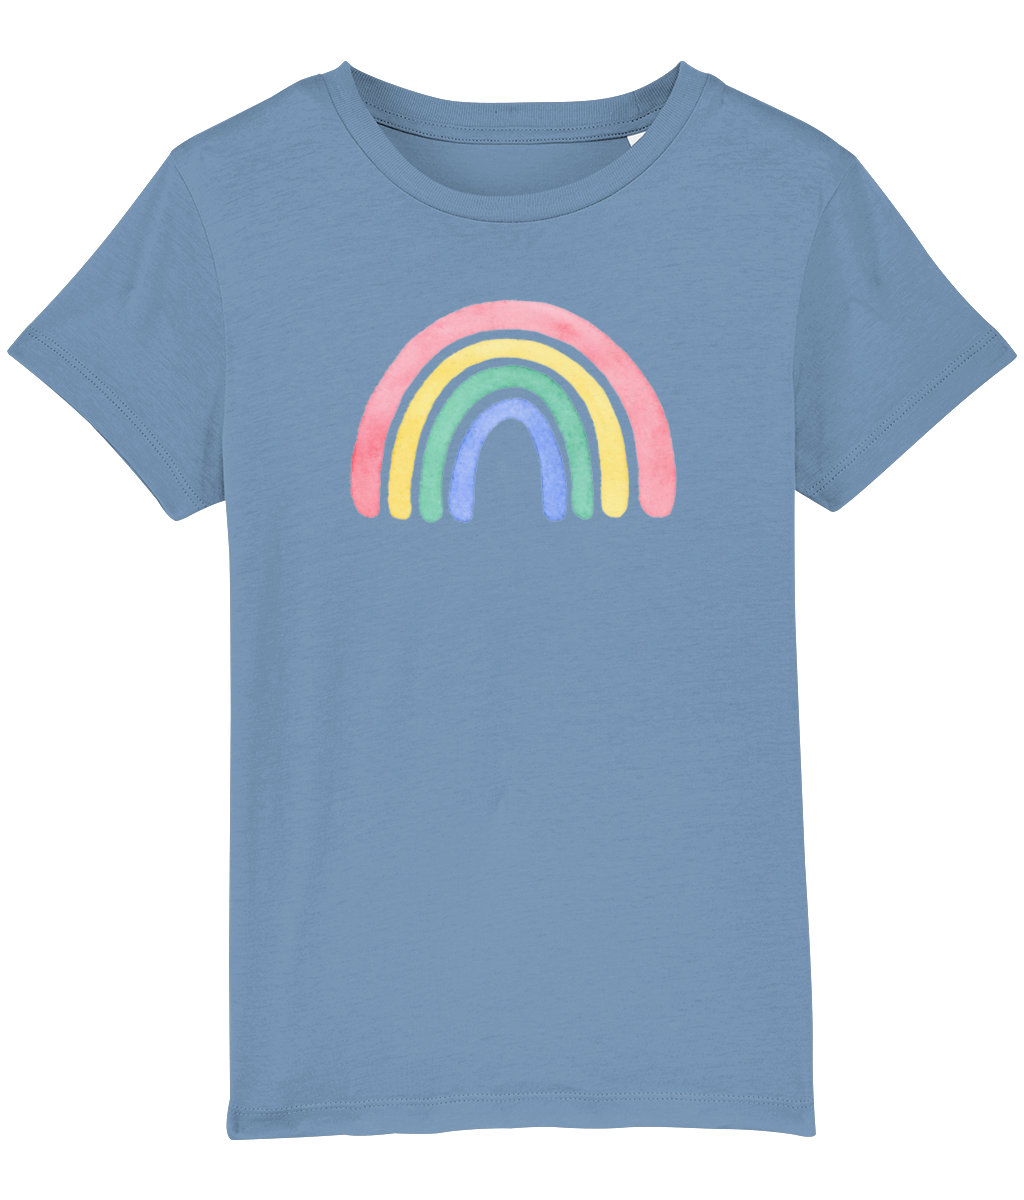 Watercolour Rainbow T-shirt - Child - 8 colours available